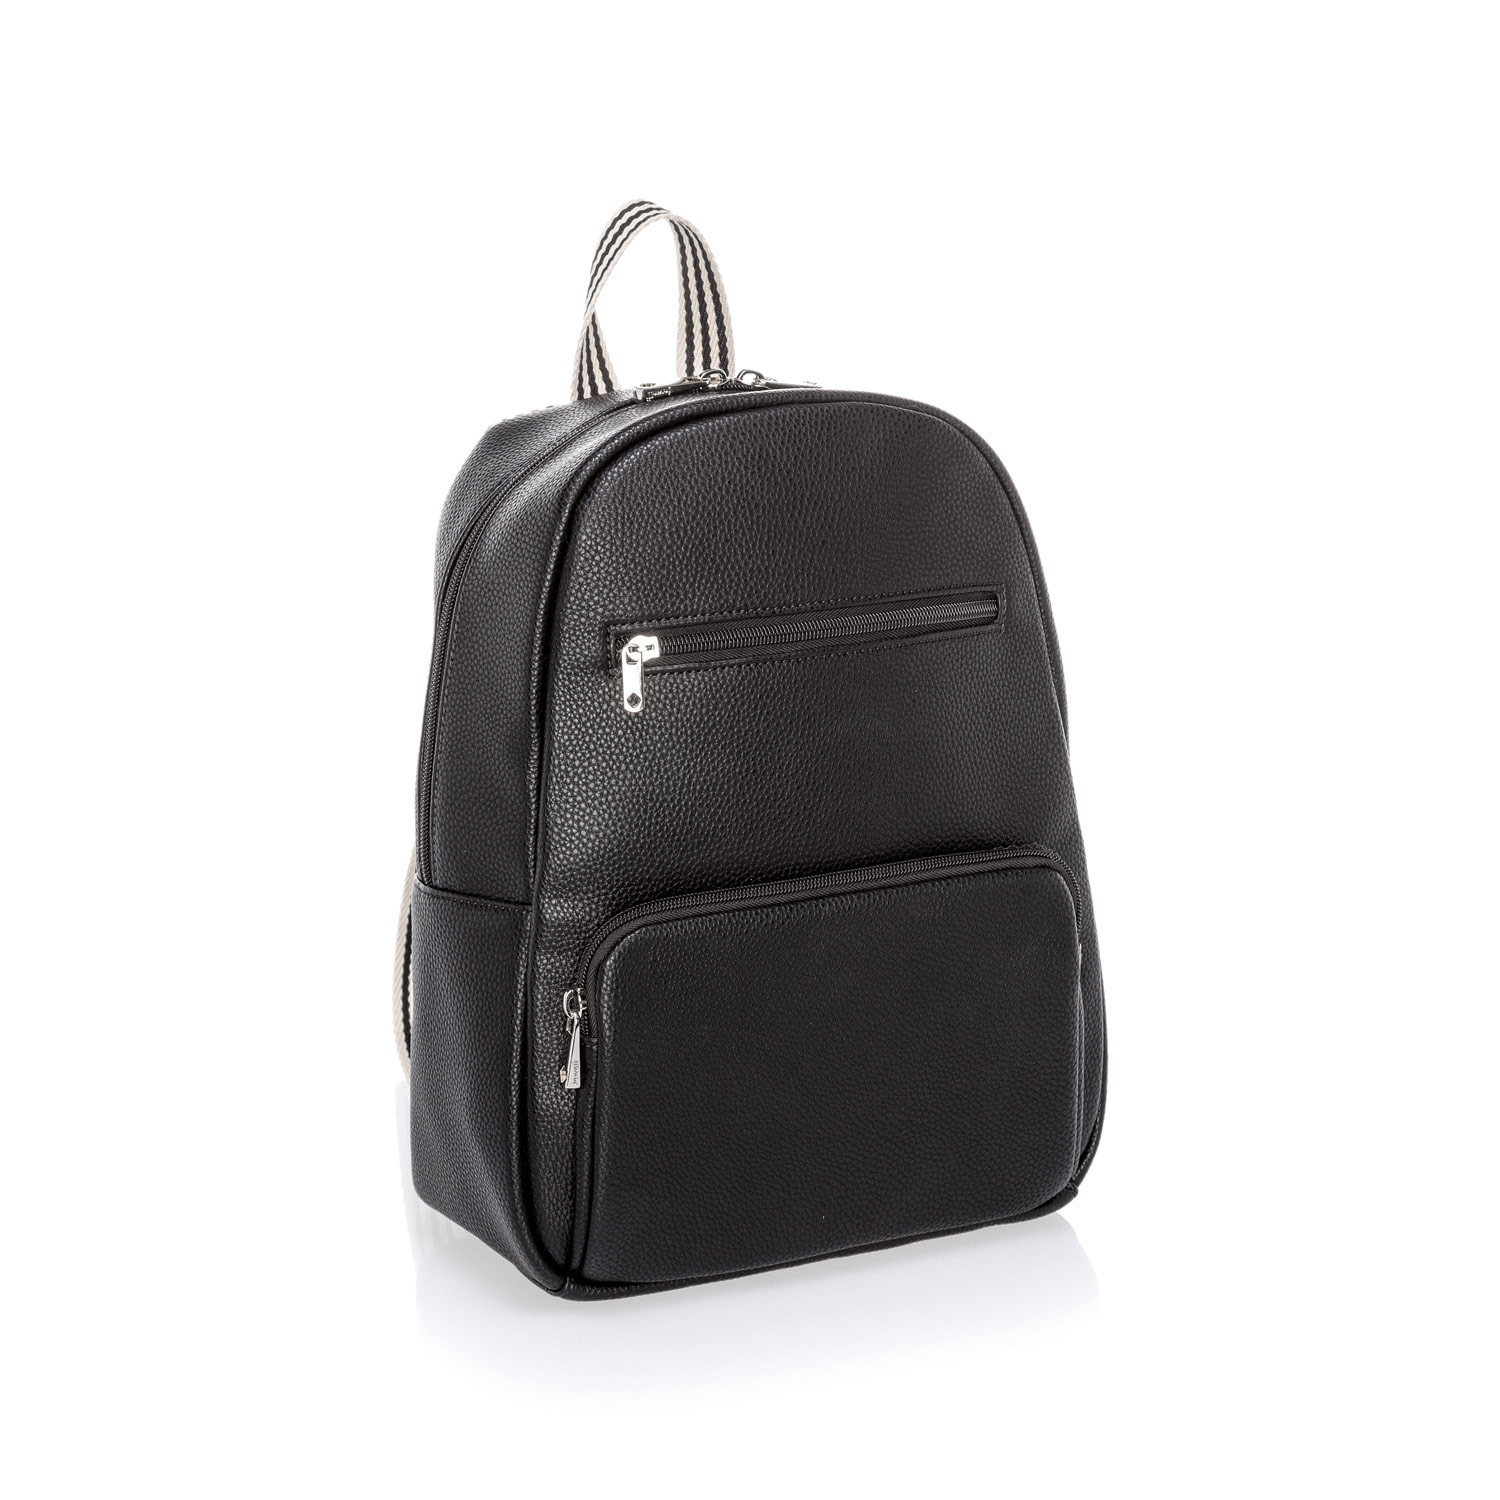 088be24690bb Black Beauty Pebble - Boutique Backpack - Thirty-One Gifts